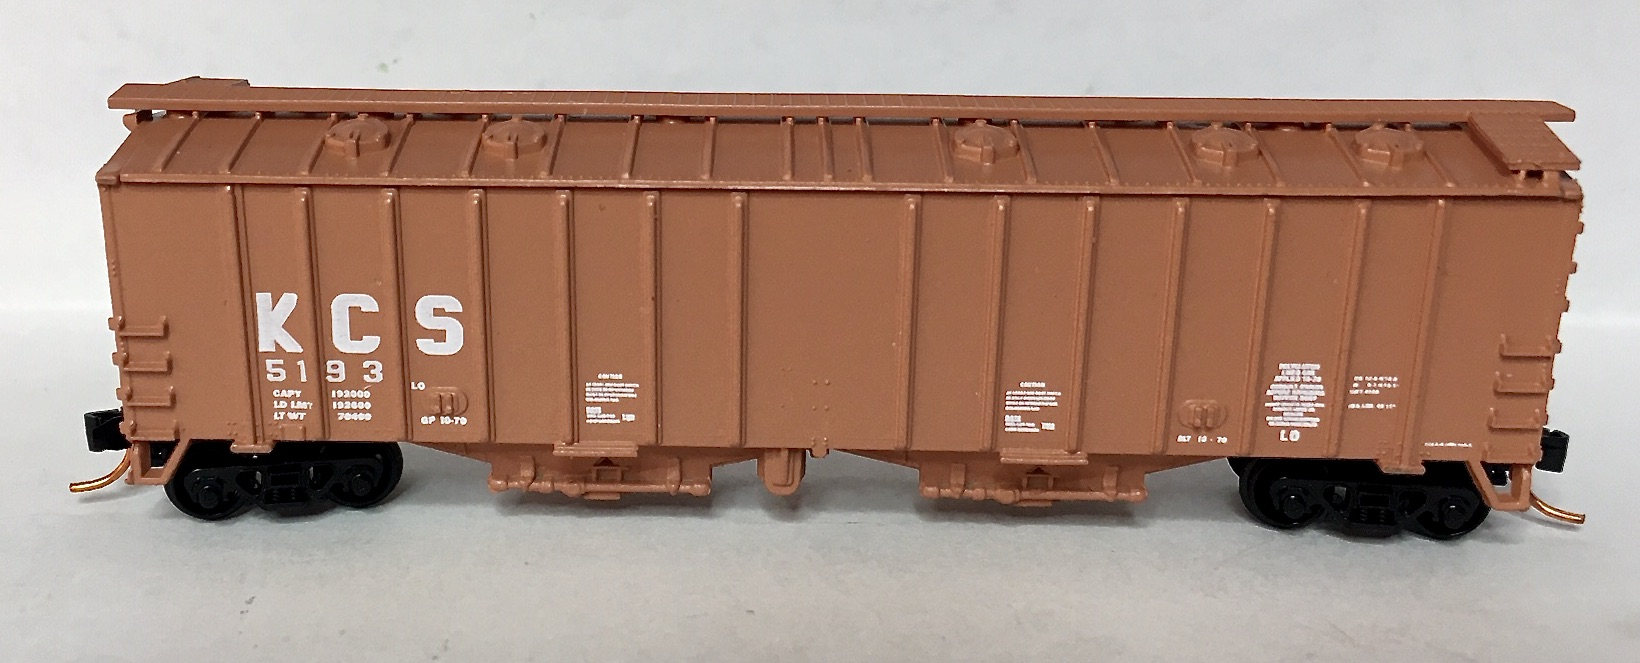 N Scale - JnJ - 9701-2 - Covered Hopper, 2-Bay, GATX Airslide 4180 - Kansas City Southern - 5193